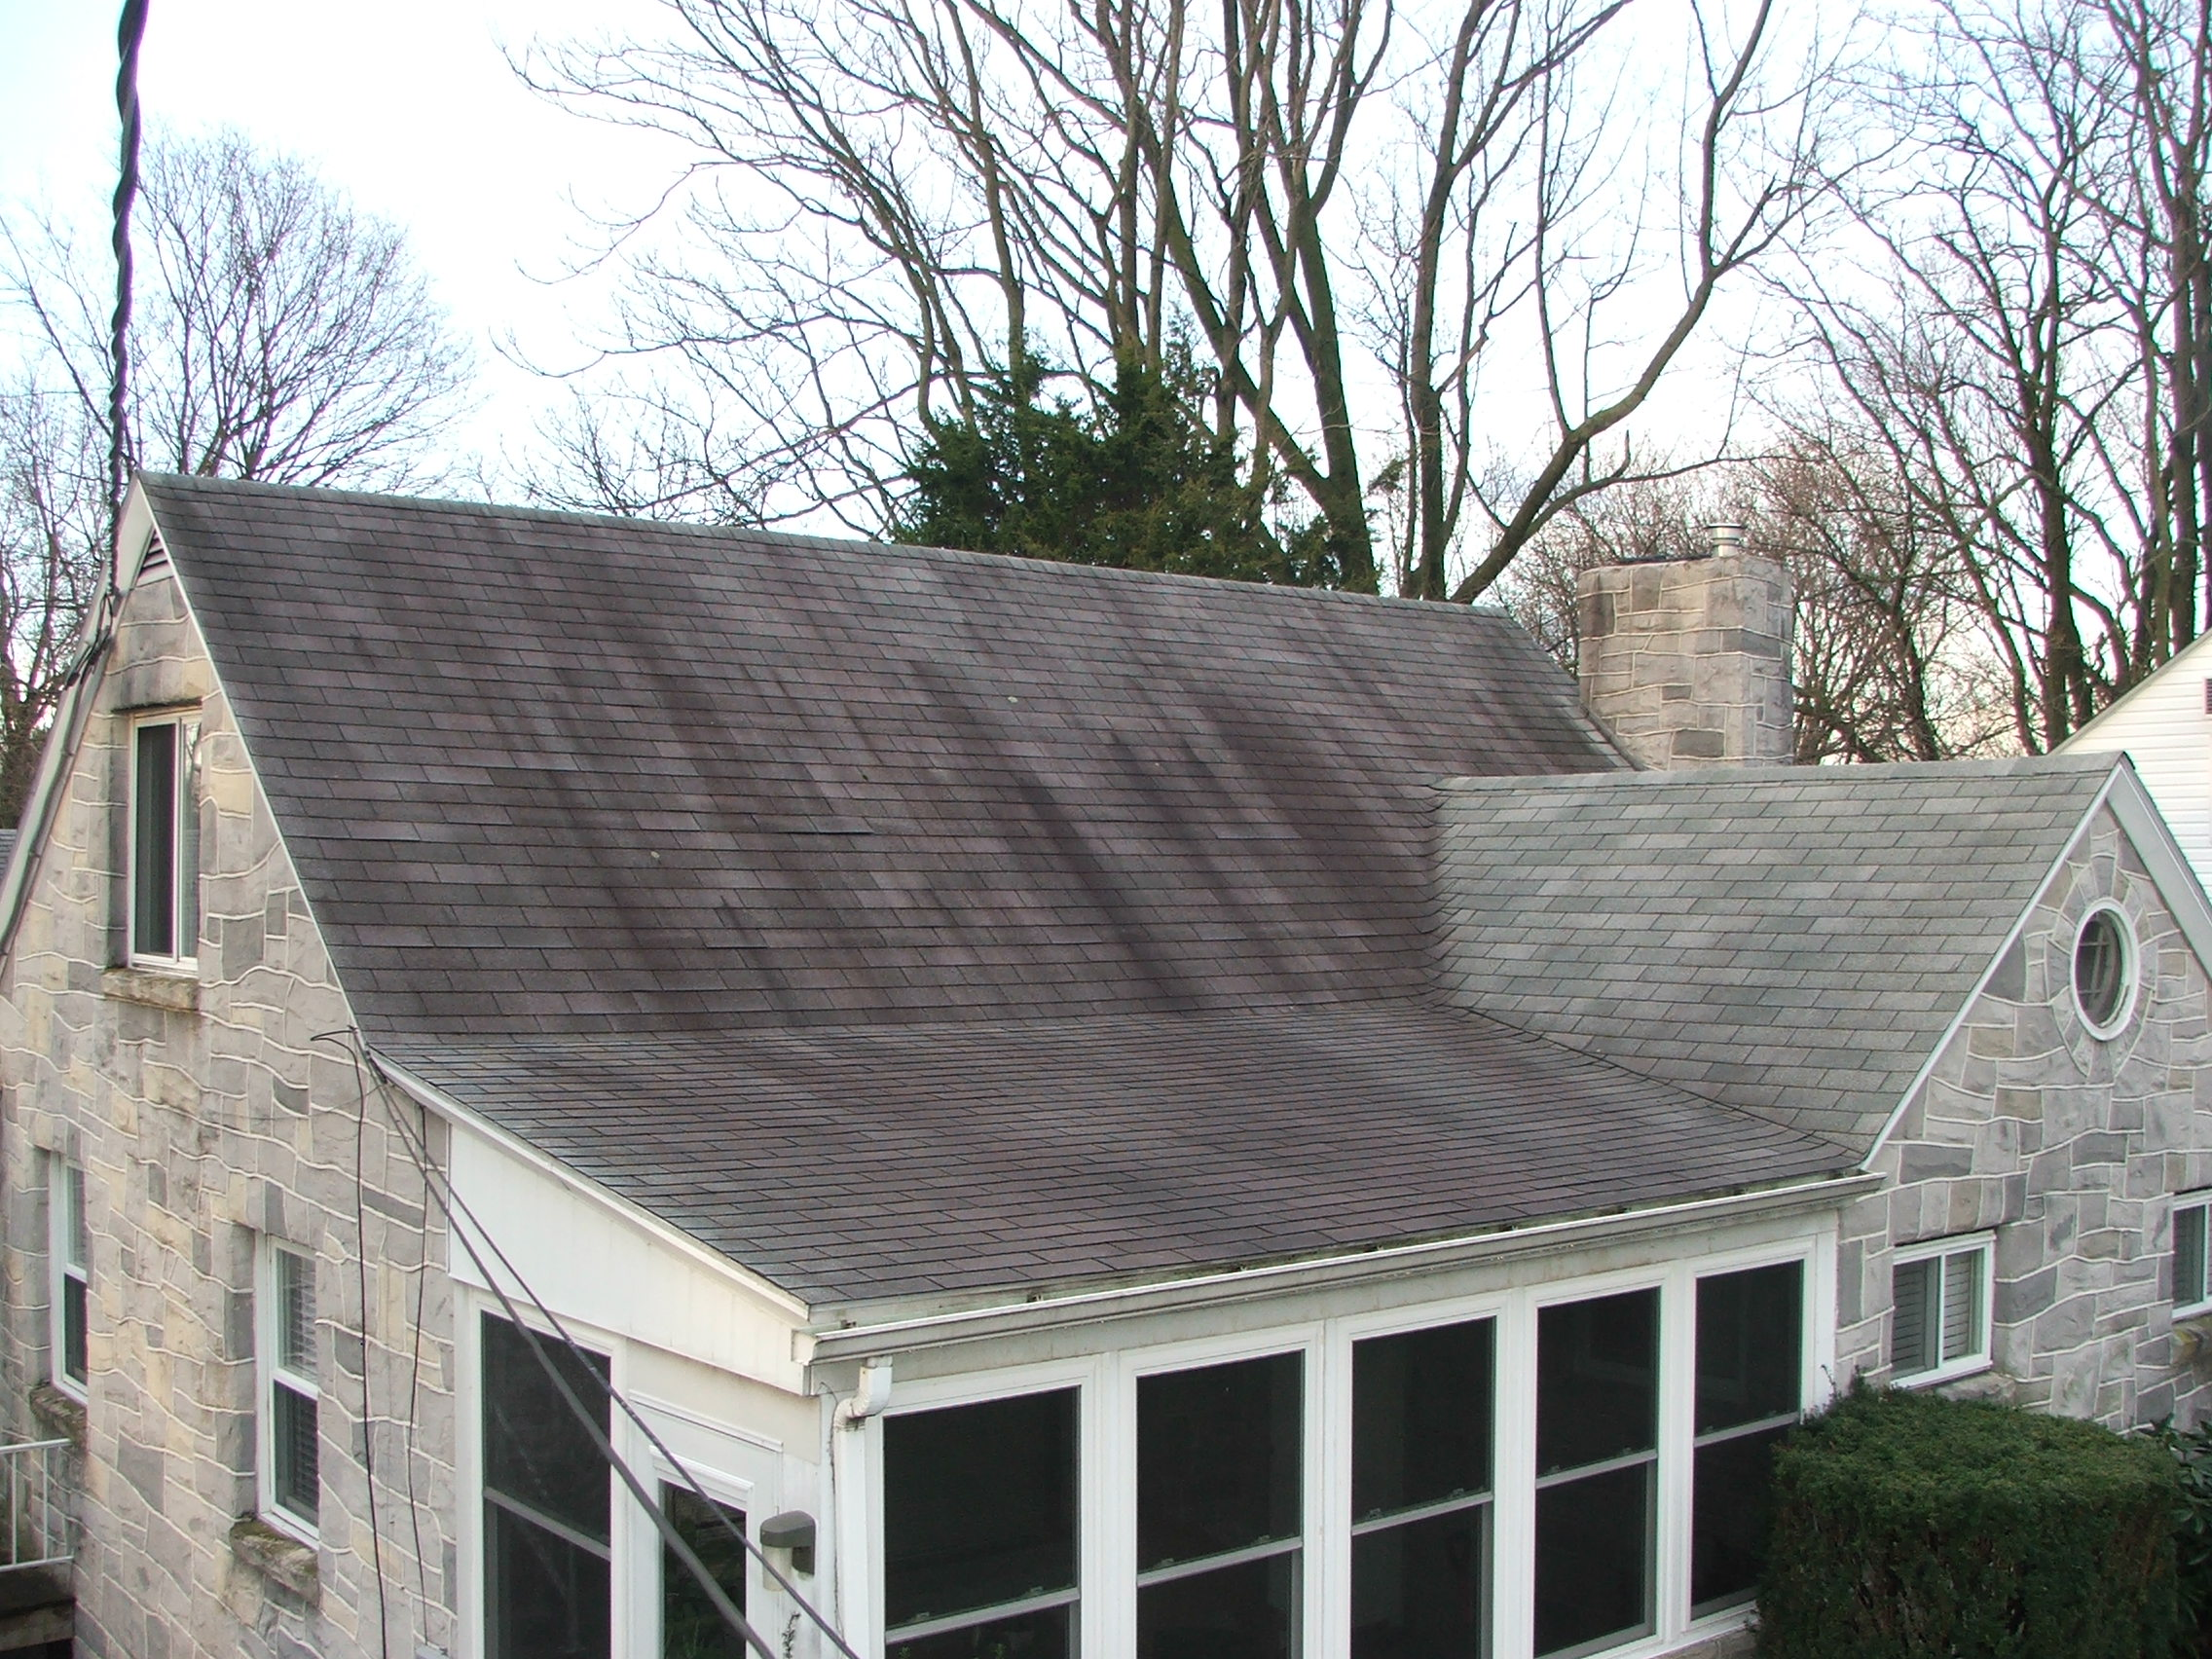 Dirty Black Stains On House Roof Before Pressure Washing ...